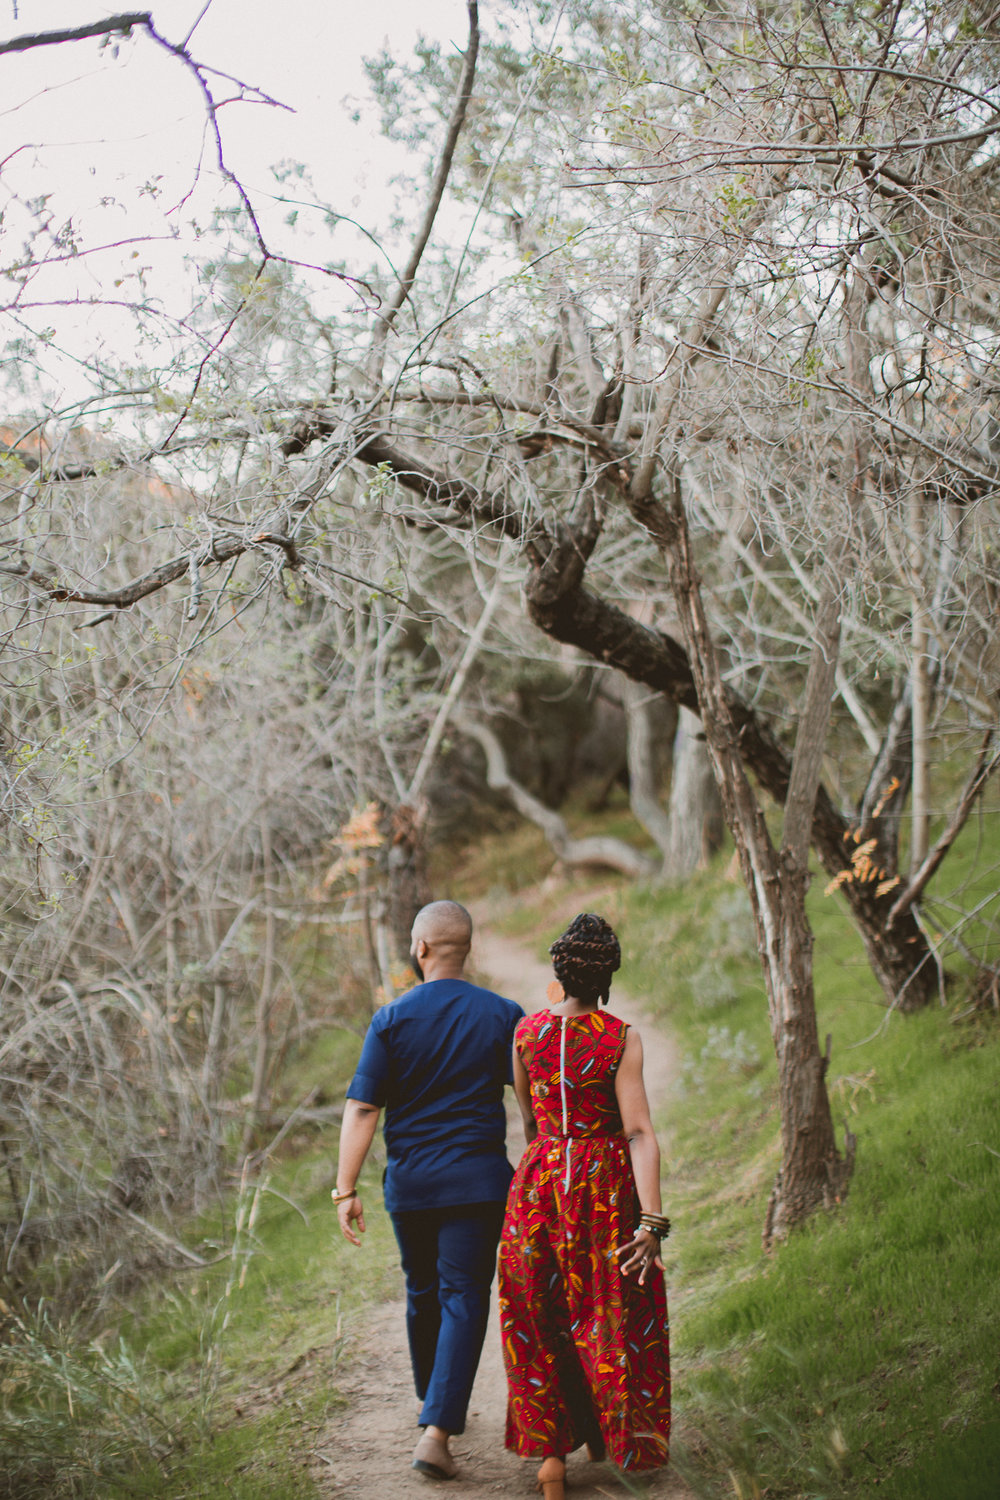 shannon-david-engagement-kelley-raye-los-angeles-wedding-photographer-21.jpg